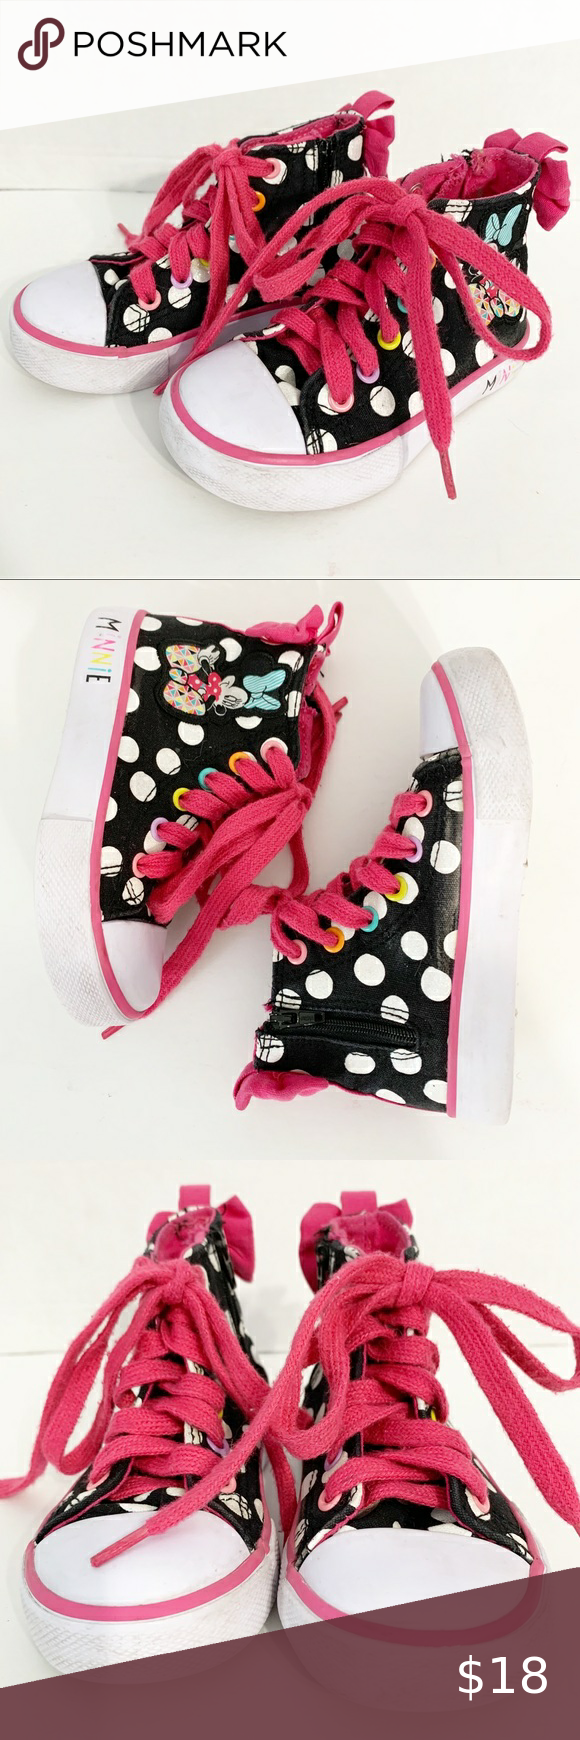 Disney Minnie Mouse Toddler Girl's Casual Dotty High Top Sneaker Gray Pink Zip